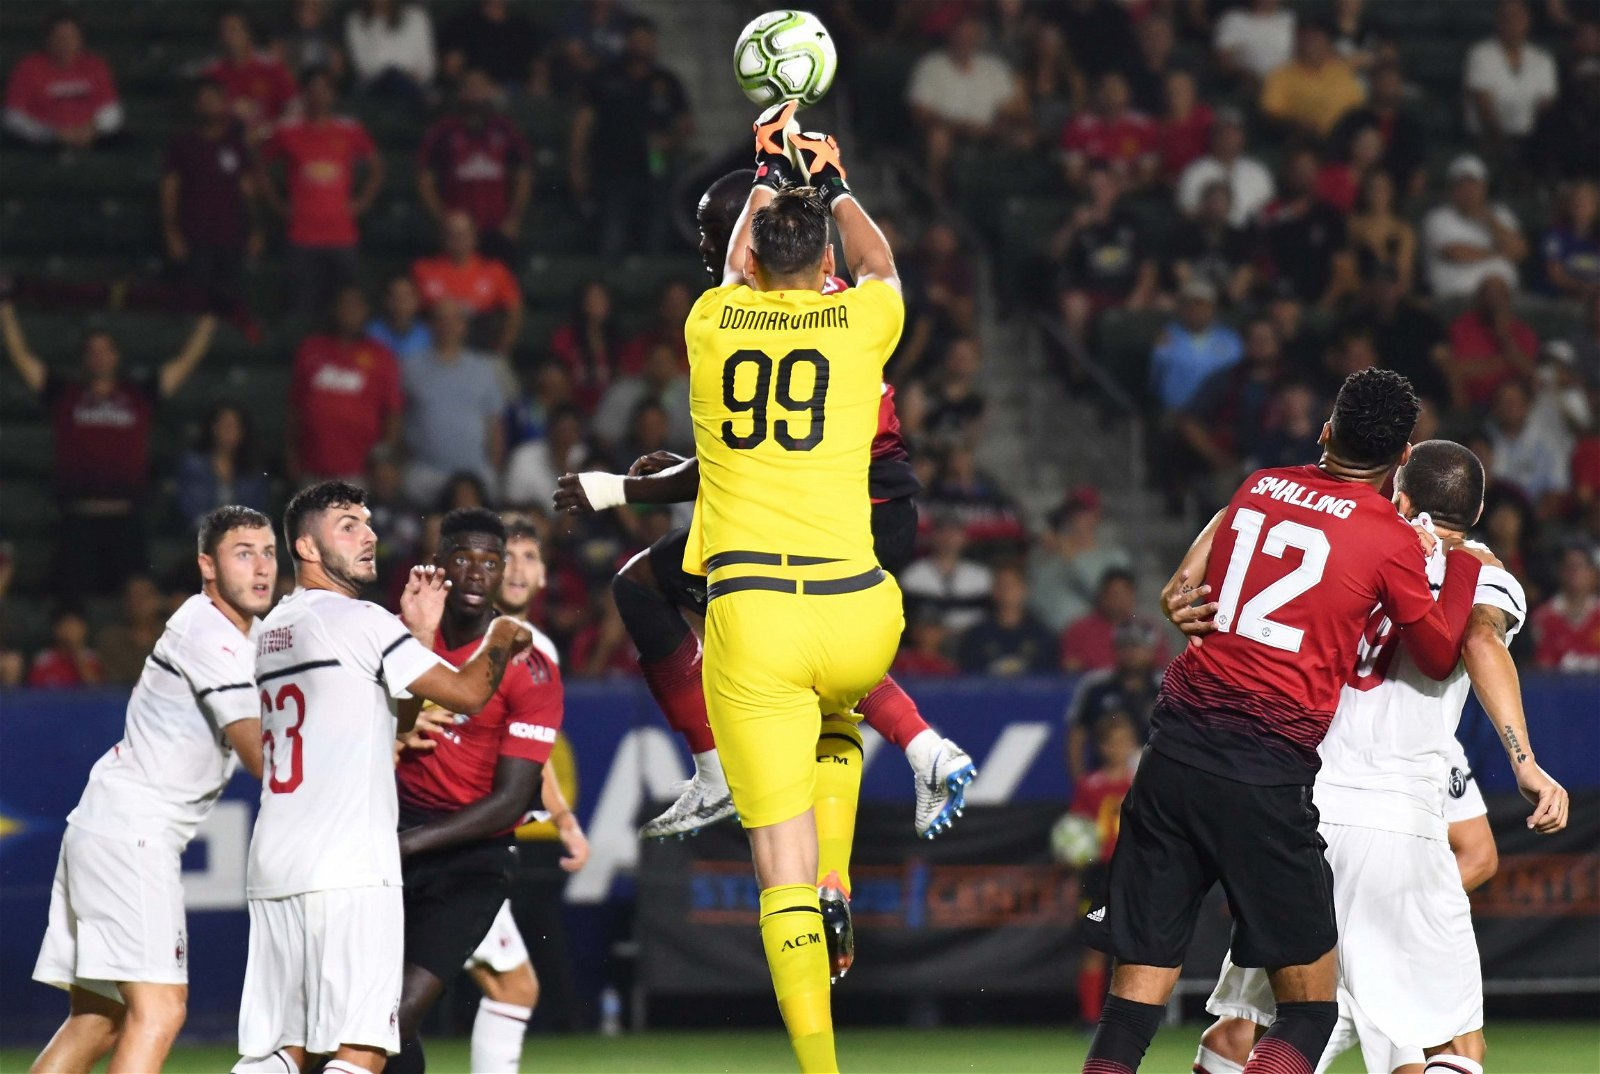 AC Milan goalkeeper Gianluigi Donnarumma punches the ball - [Images] - The photos that indicate why Donnarumma would be a big Bernd Leno upgrade